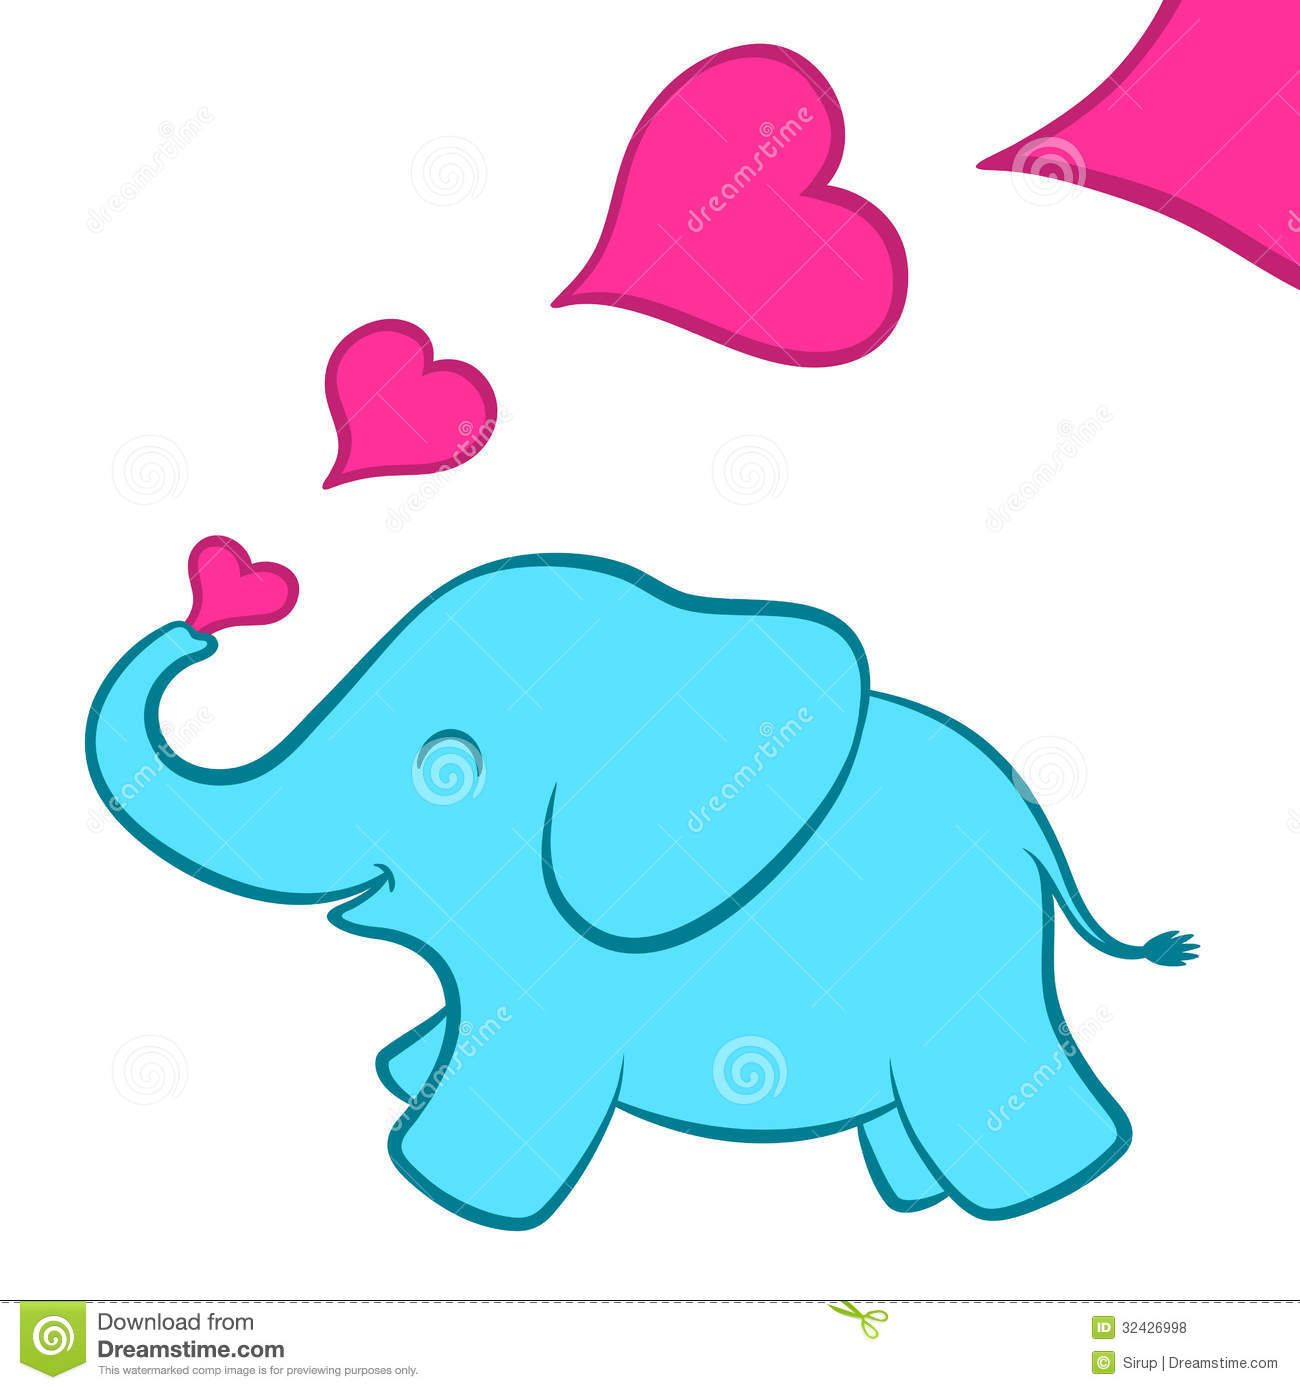 Baby Elephant Clipart Clipart Panda Free Clipart Images.